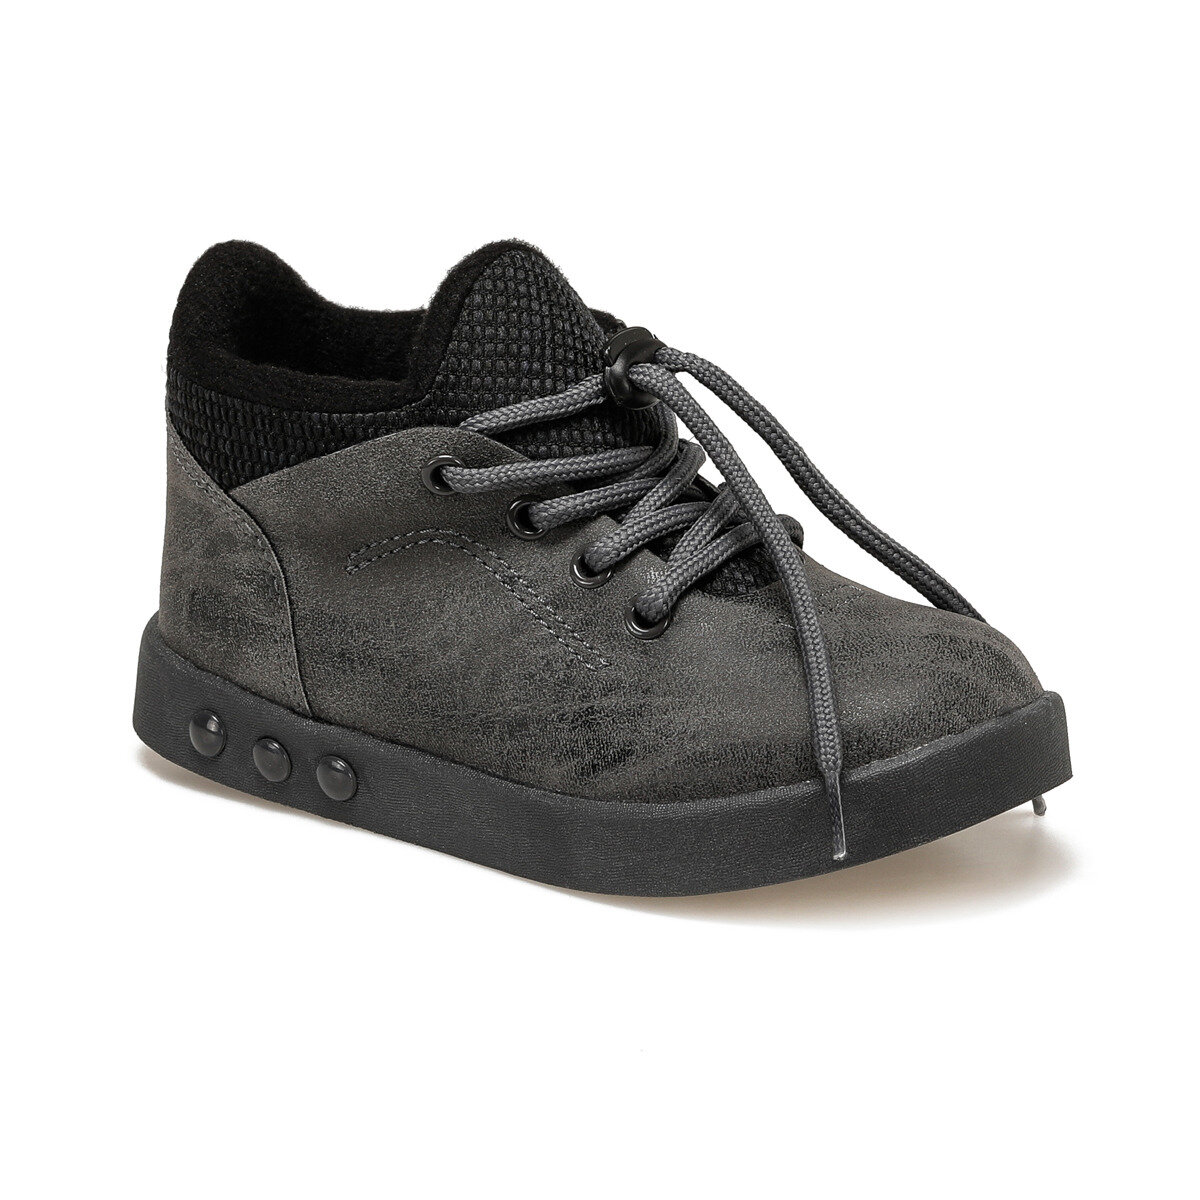 FLO 313. P19K. 105 BOOTIES WORK LIGHT Smoked Male Child Sneaker Shoes VICCO